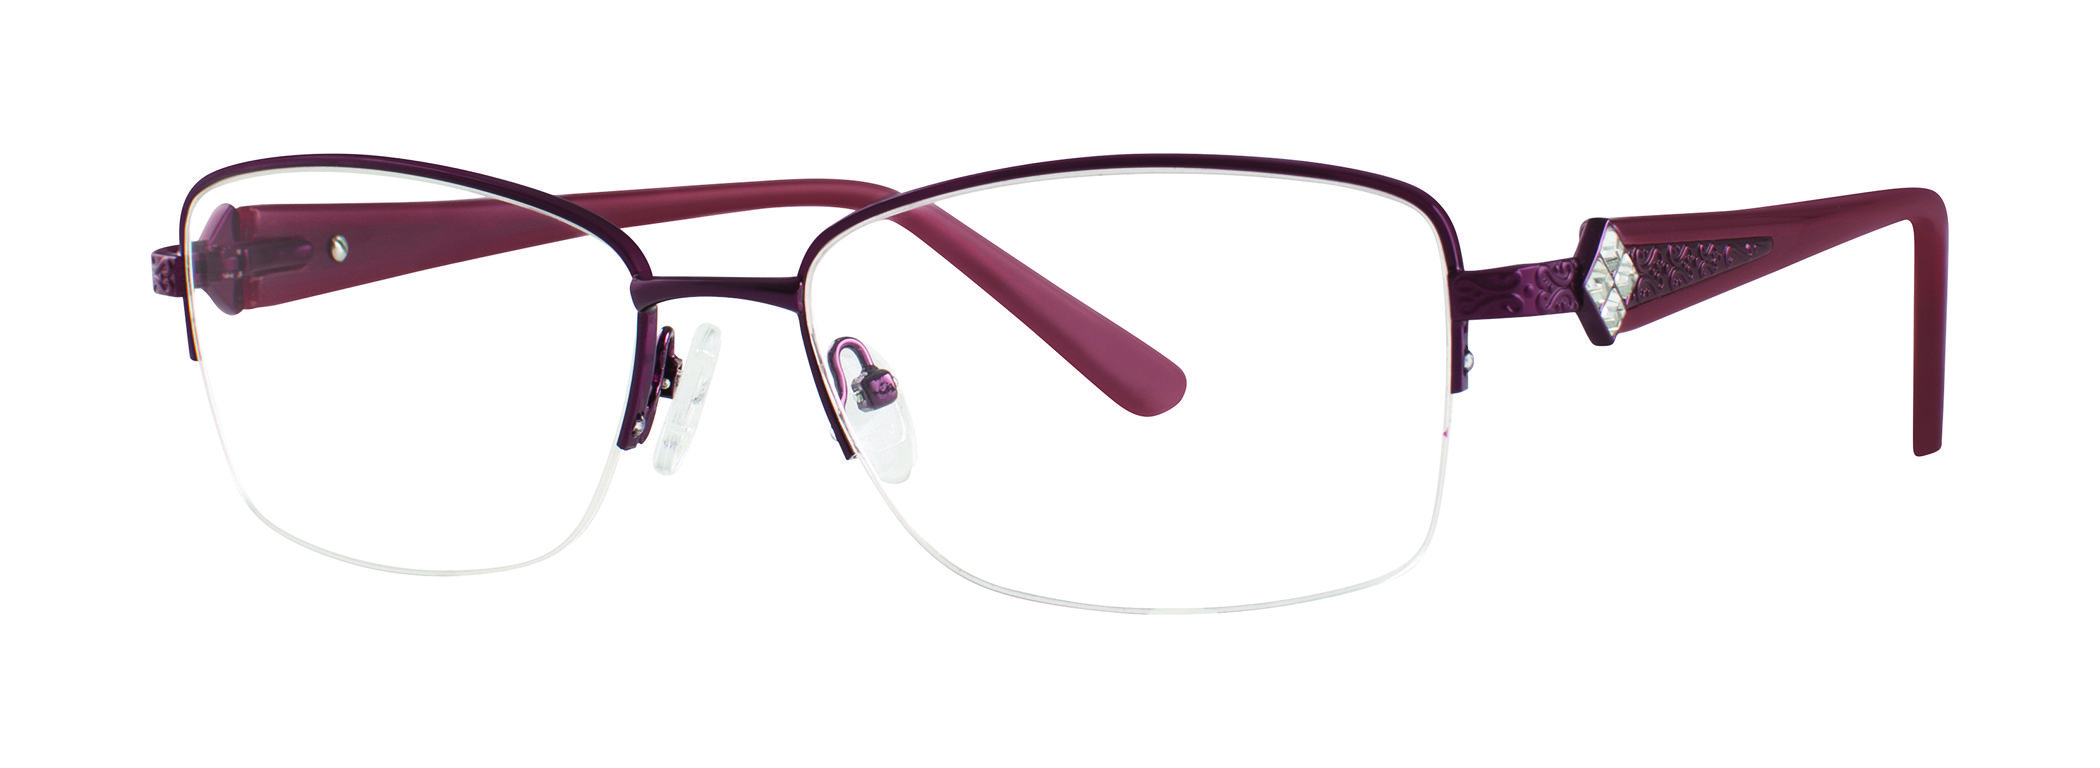 Wonderful by GB+ Eyewear. Plus-size eyeglass frames that are ...